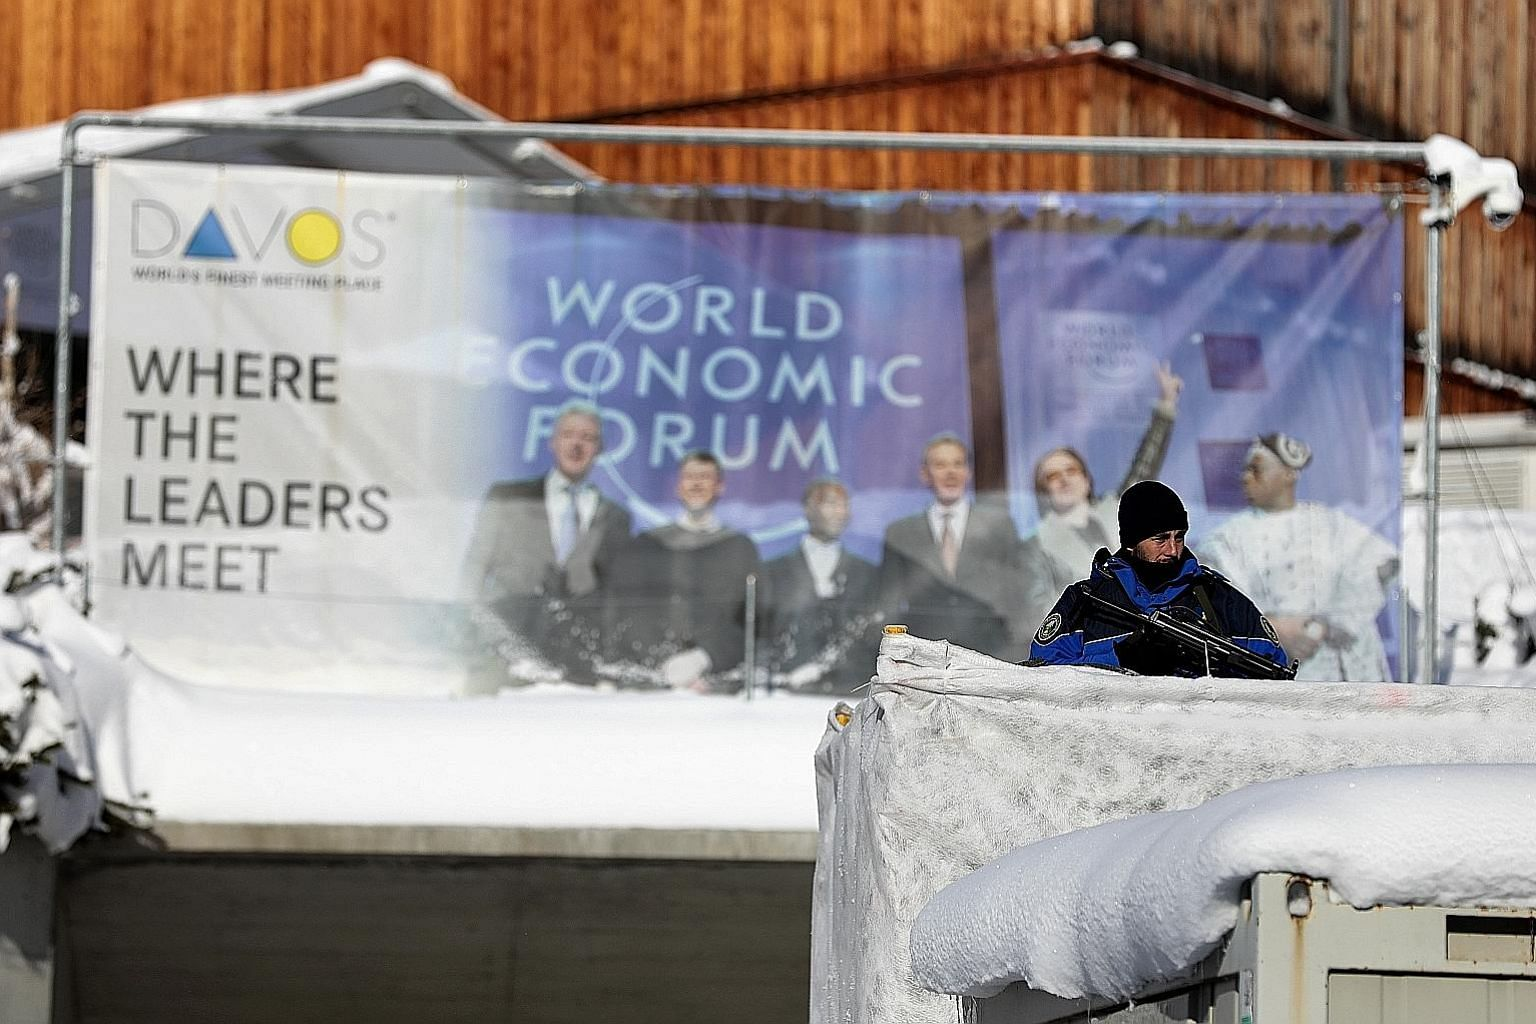 """At the World Economic Forum in Davos last week, founder and executive chairman Klaus Schwab noted that apart from sharing wealth more fairly, steps were also needed to """"reinvigorate economic growth""""."""